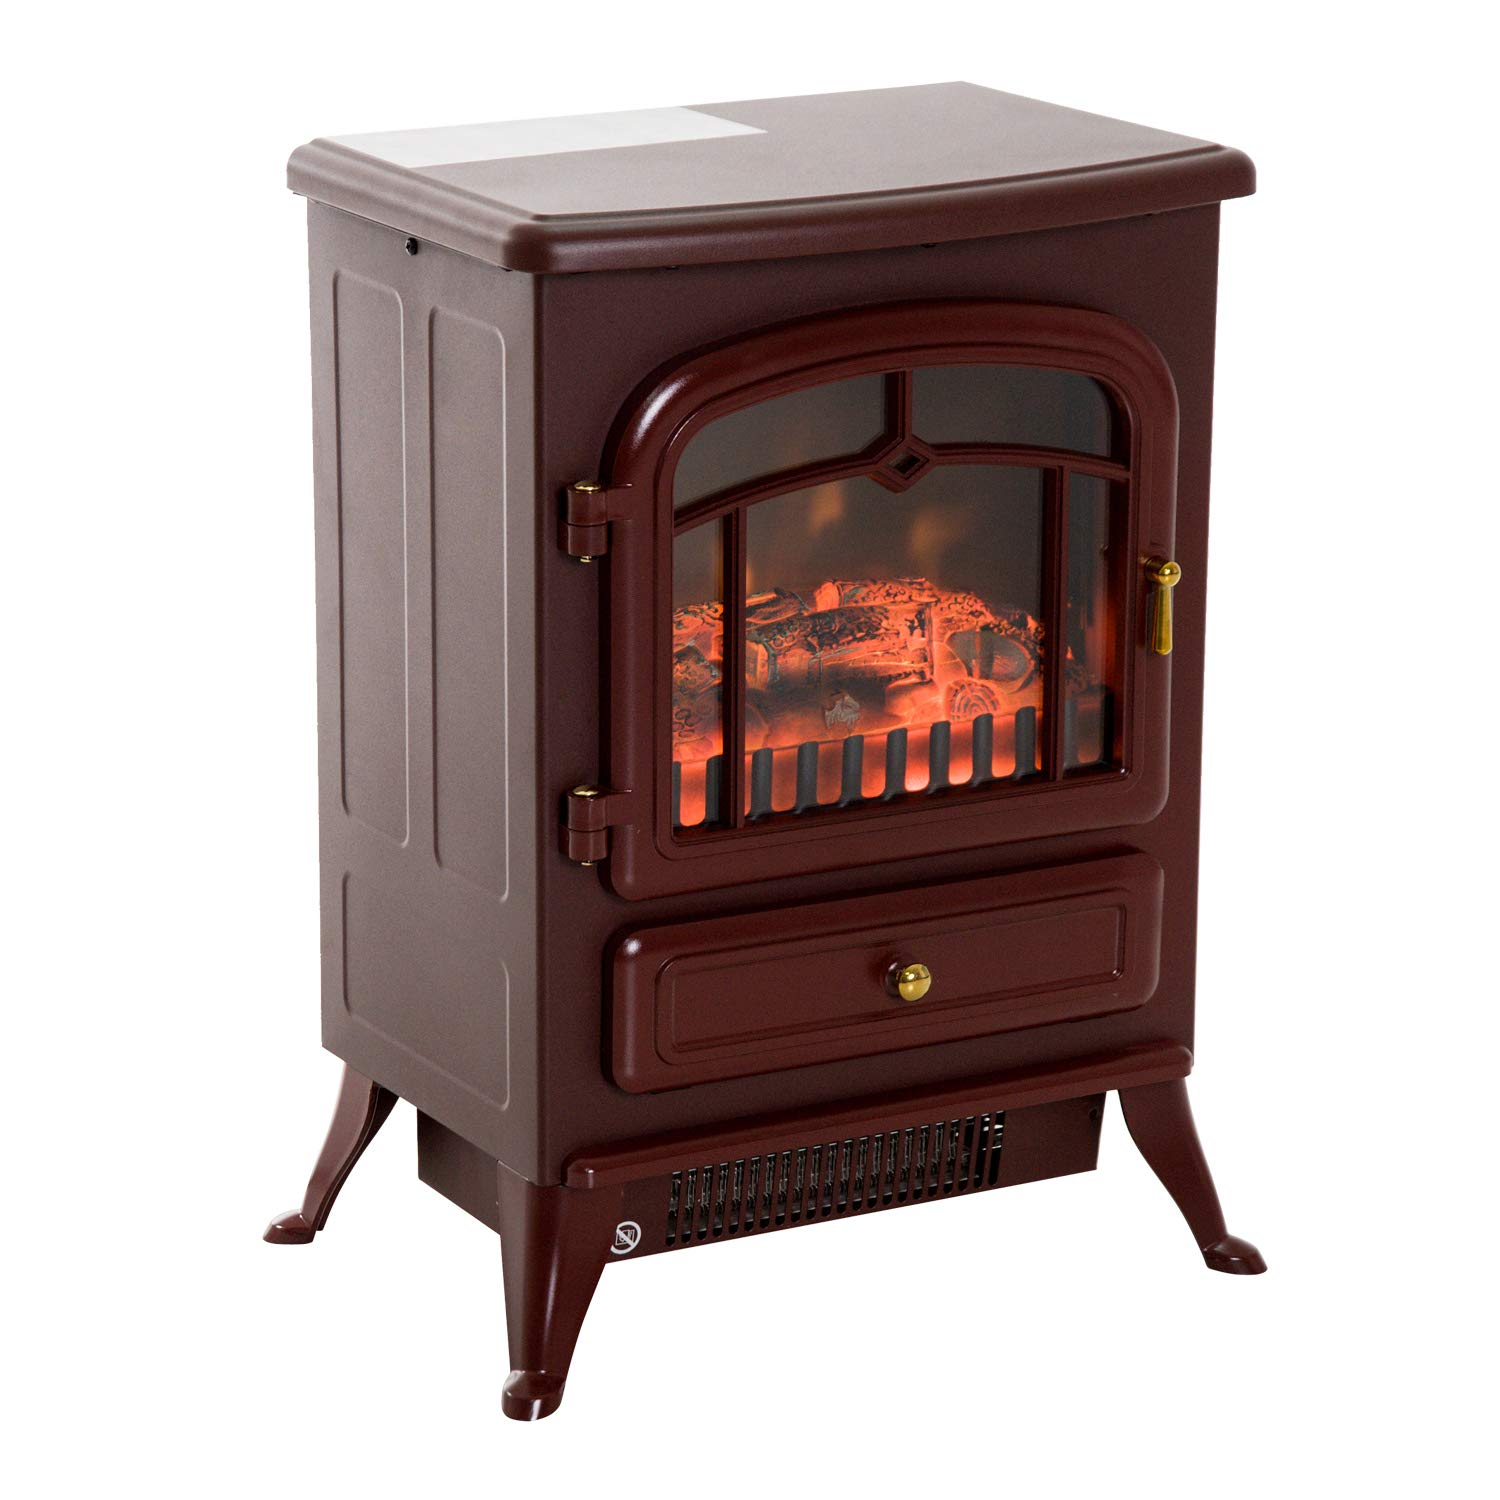 HOMCOM 16 Free Standing Electric Fireplace Portable Adjustable Stove with Heater Wood Burning Flame 750/1500W Red Brown Aosom Canada